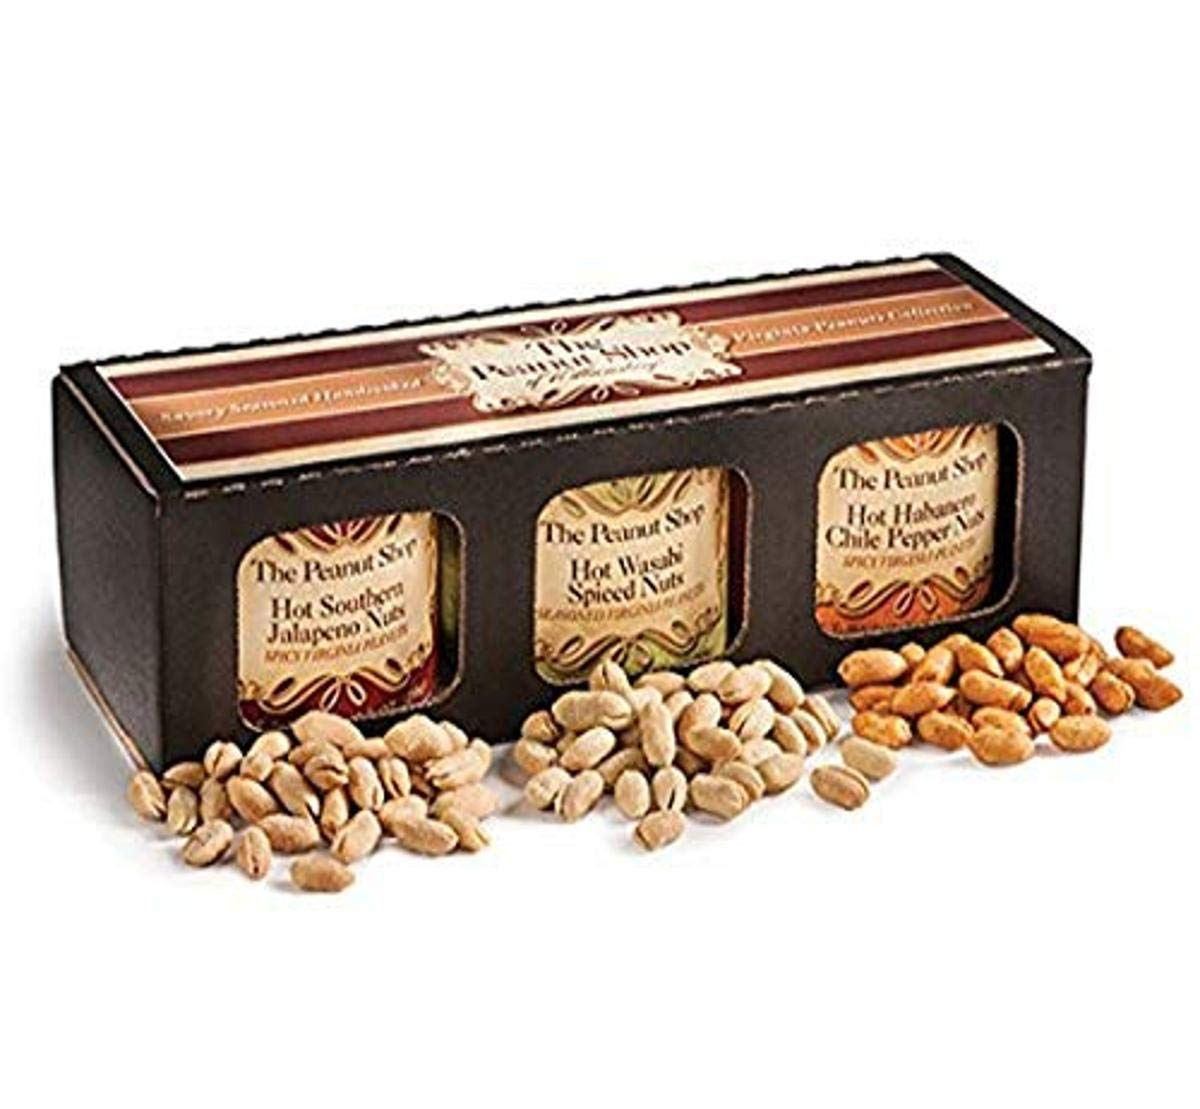 The Peanut Shop of Williamsburg Hot & Savory Nut Gift Box, Spicy, 2 Pound